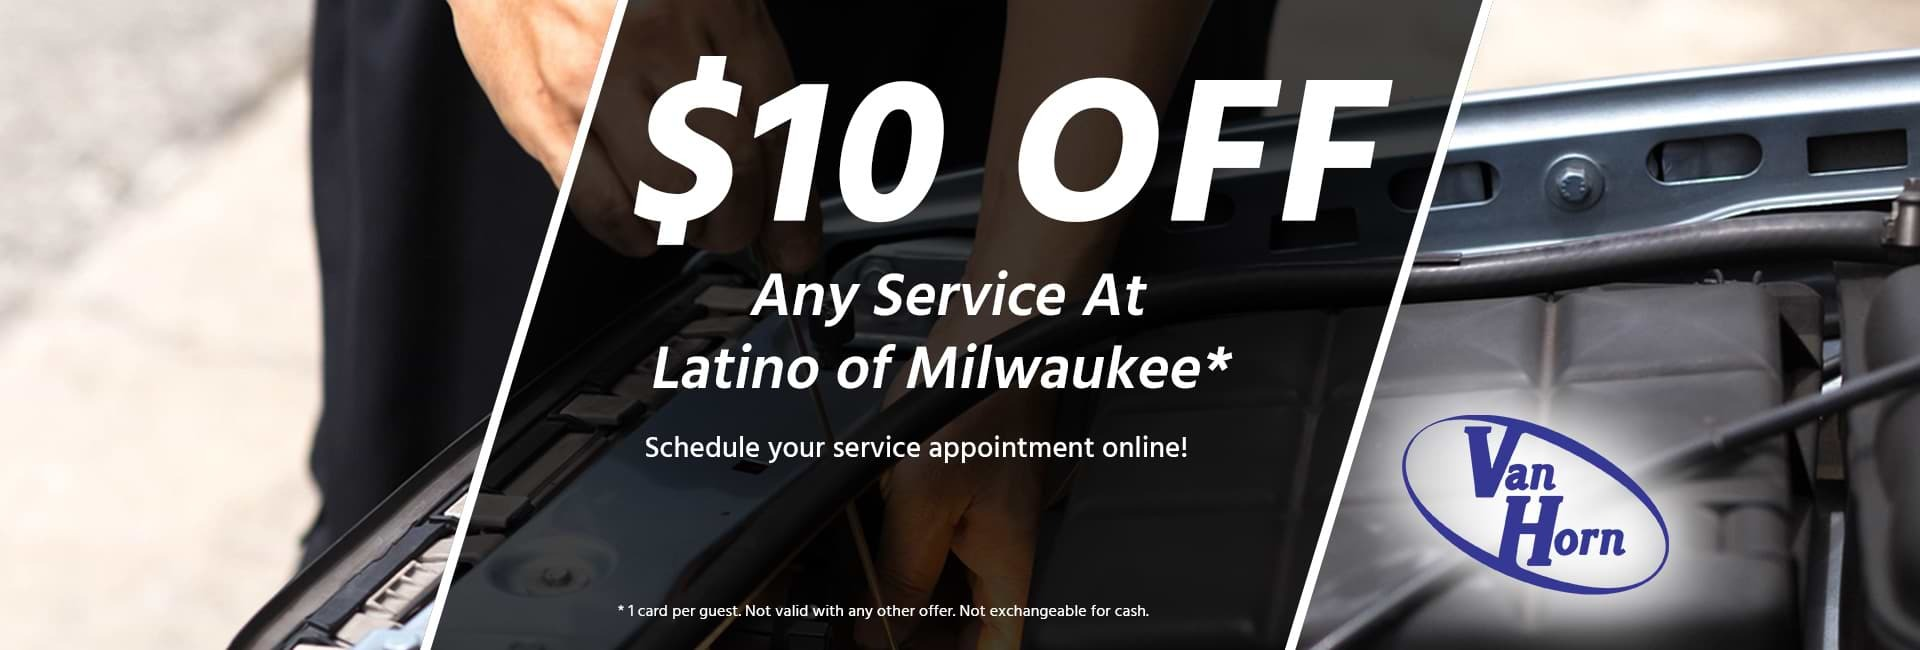 $10 Off Any Service at Latino of Milwaukee